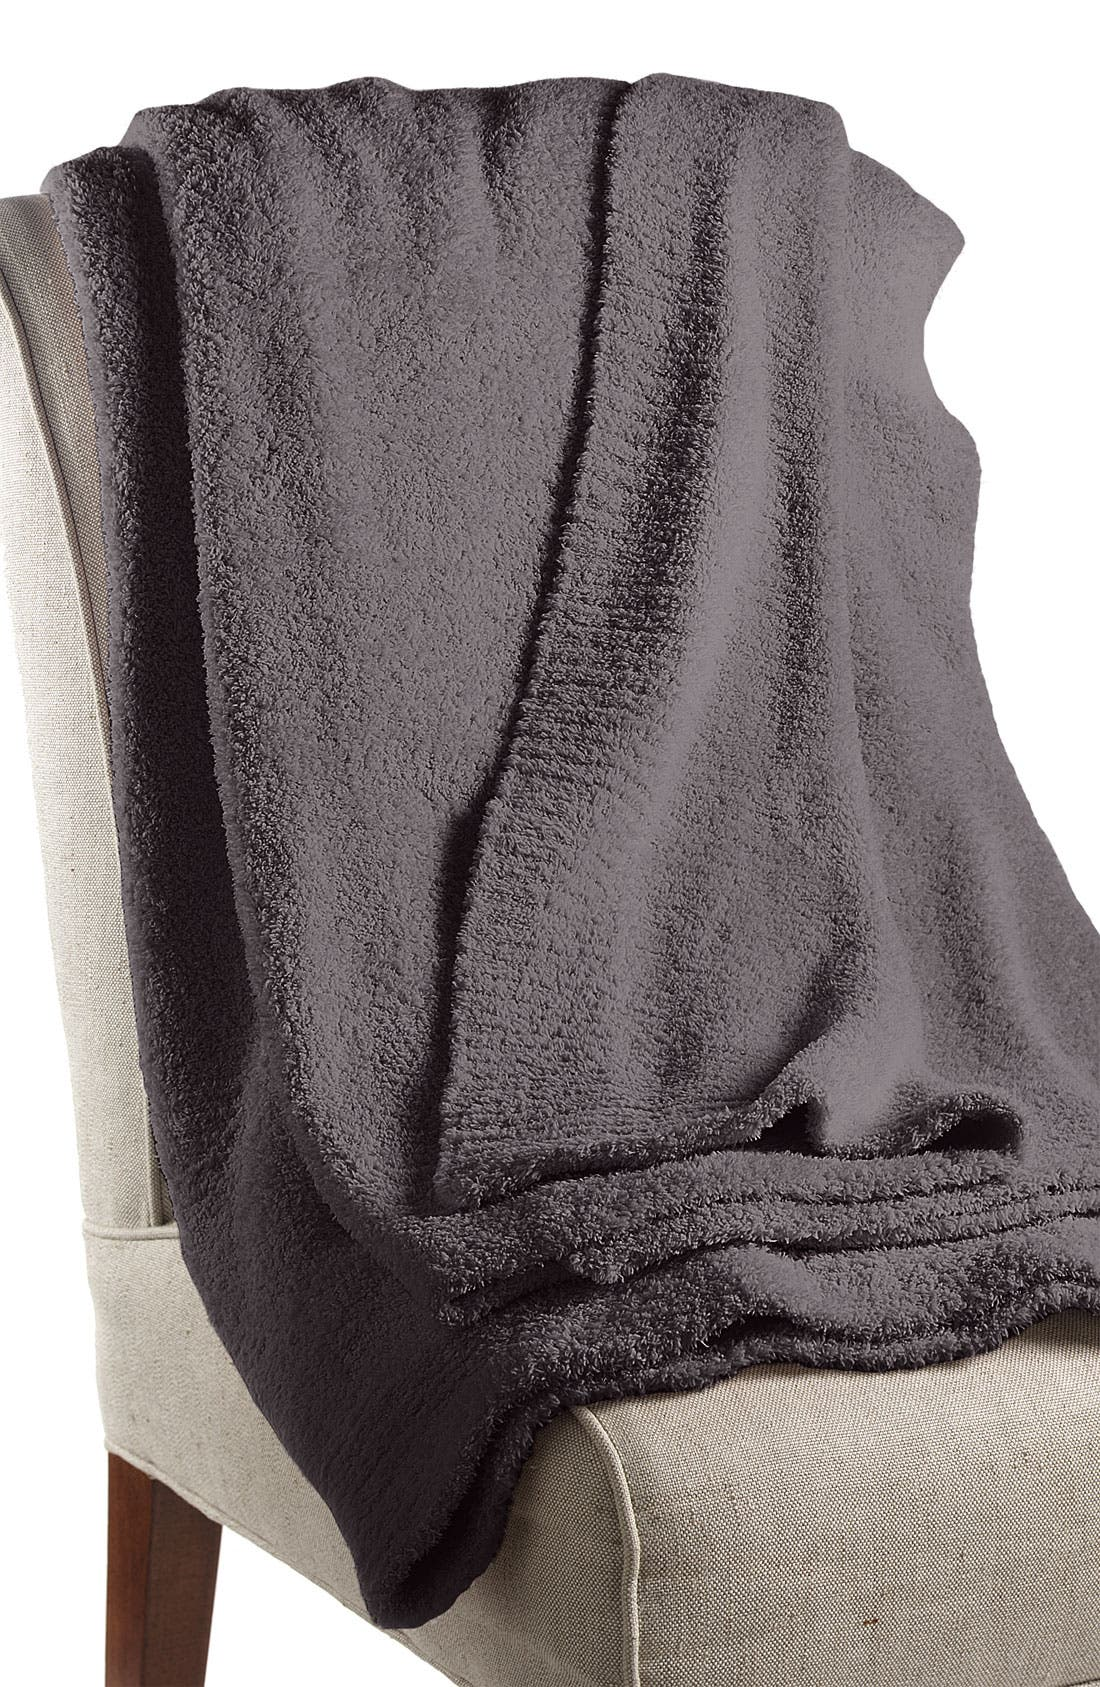 'CozyChic<sup>®</sup>' Ribbed Blanket,                         Main,                         color, 020